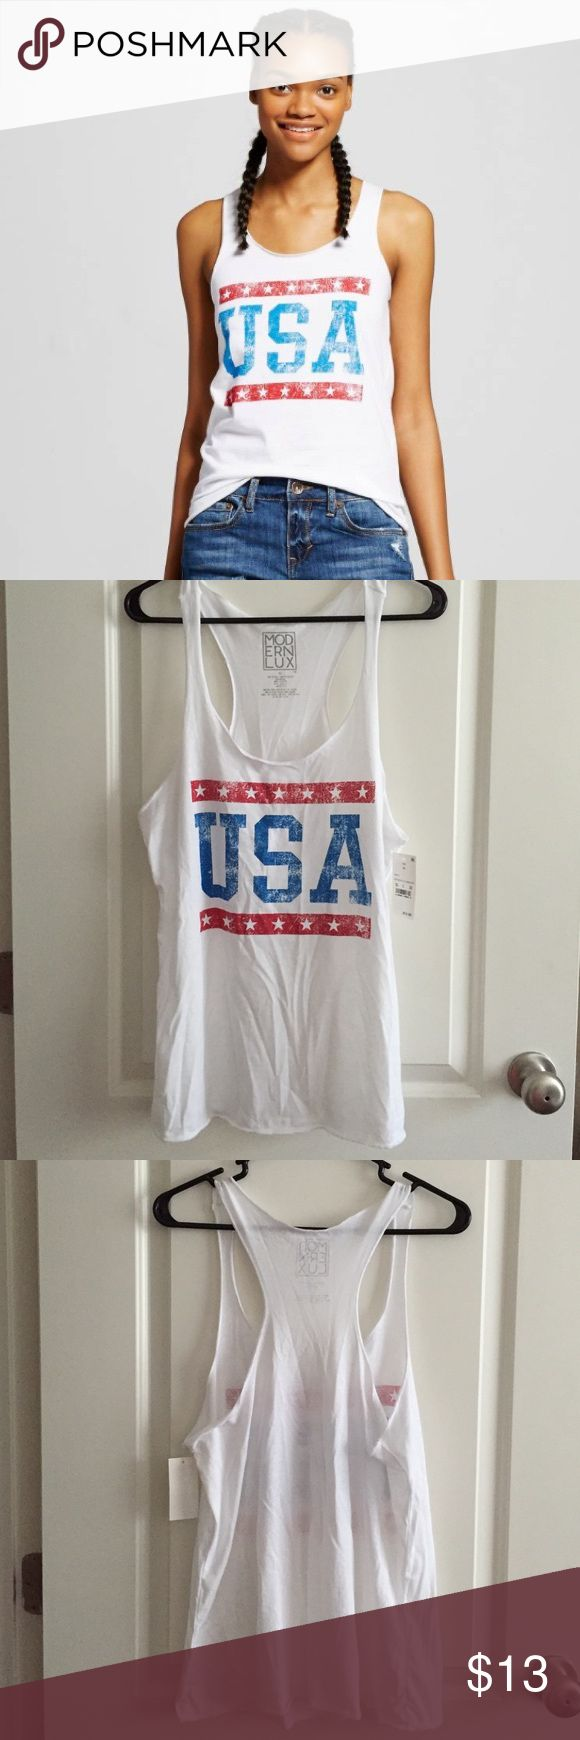 USA Patriotic Racerbank Tank Top Brand new with tags! Festive patriotic tank top perfect for Fourth of July or Labor Day! Runs small Modern Lux Tops Tank Tops